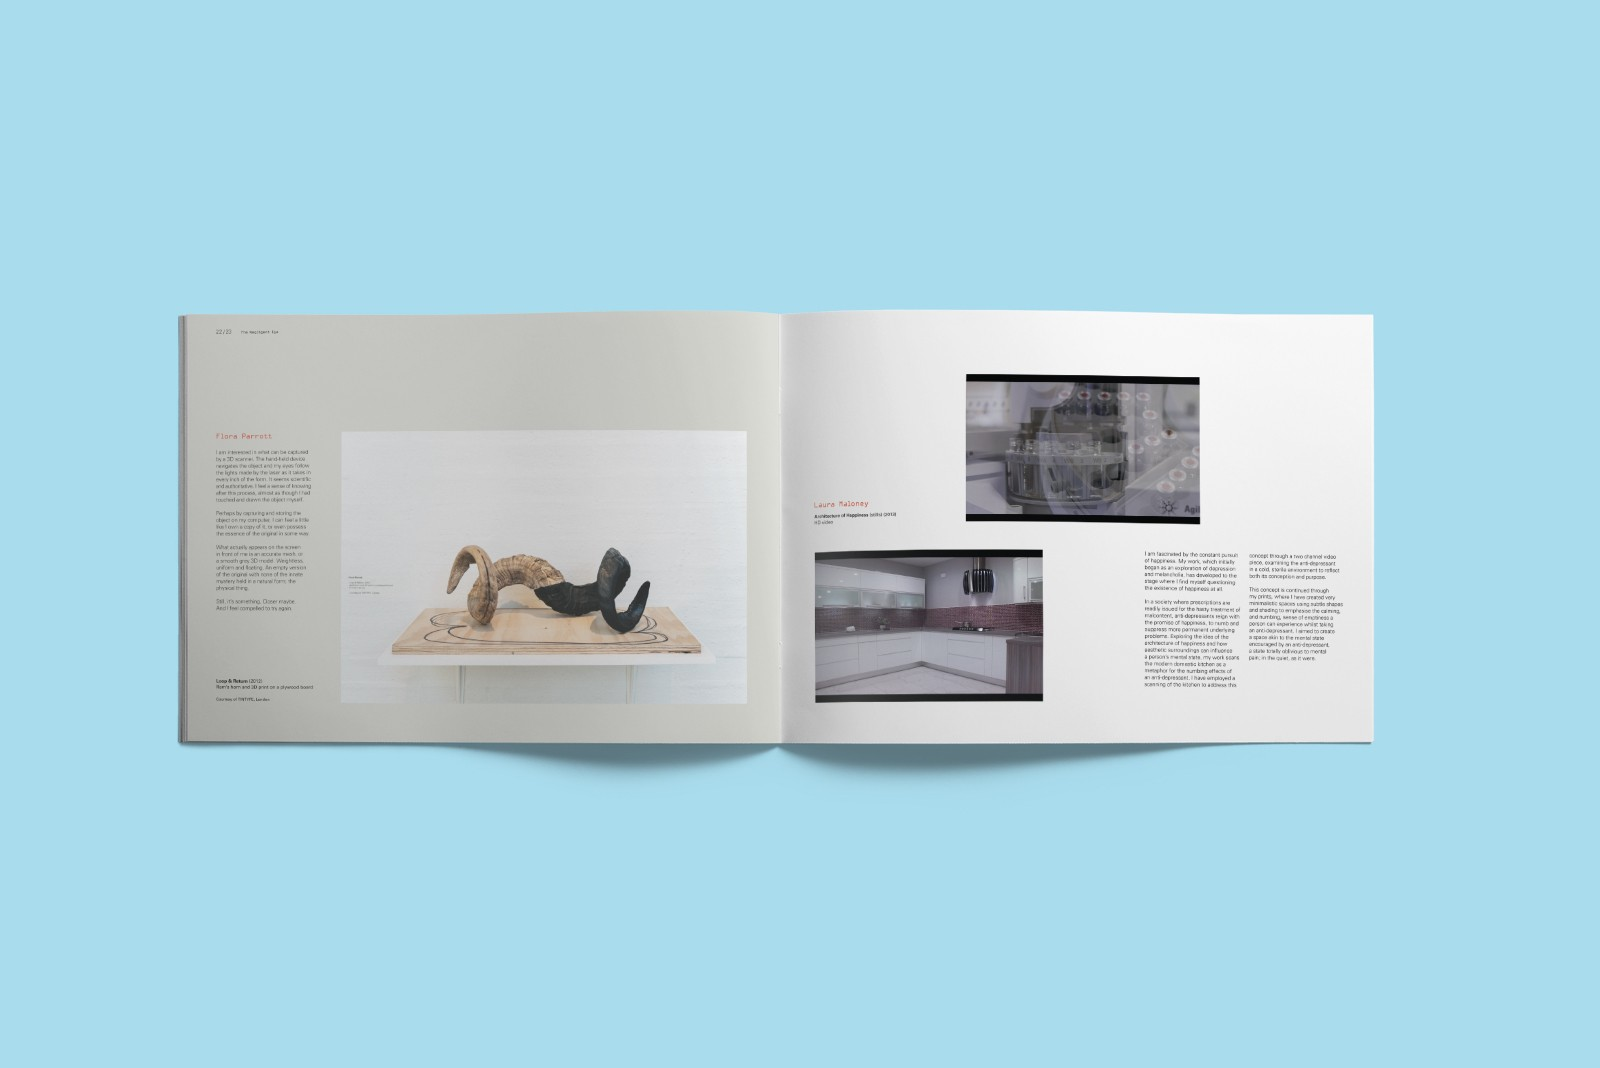 Exhibition publication: The Negligent Eye